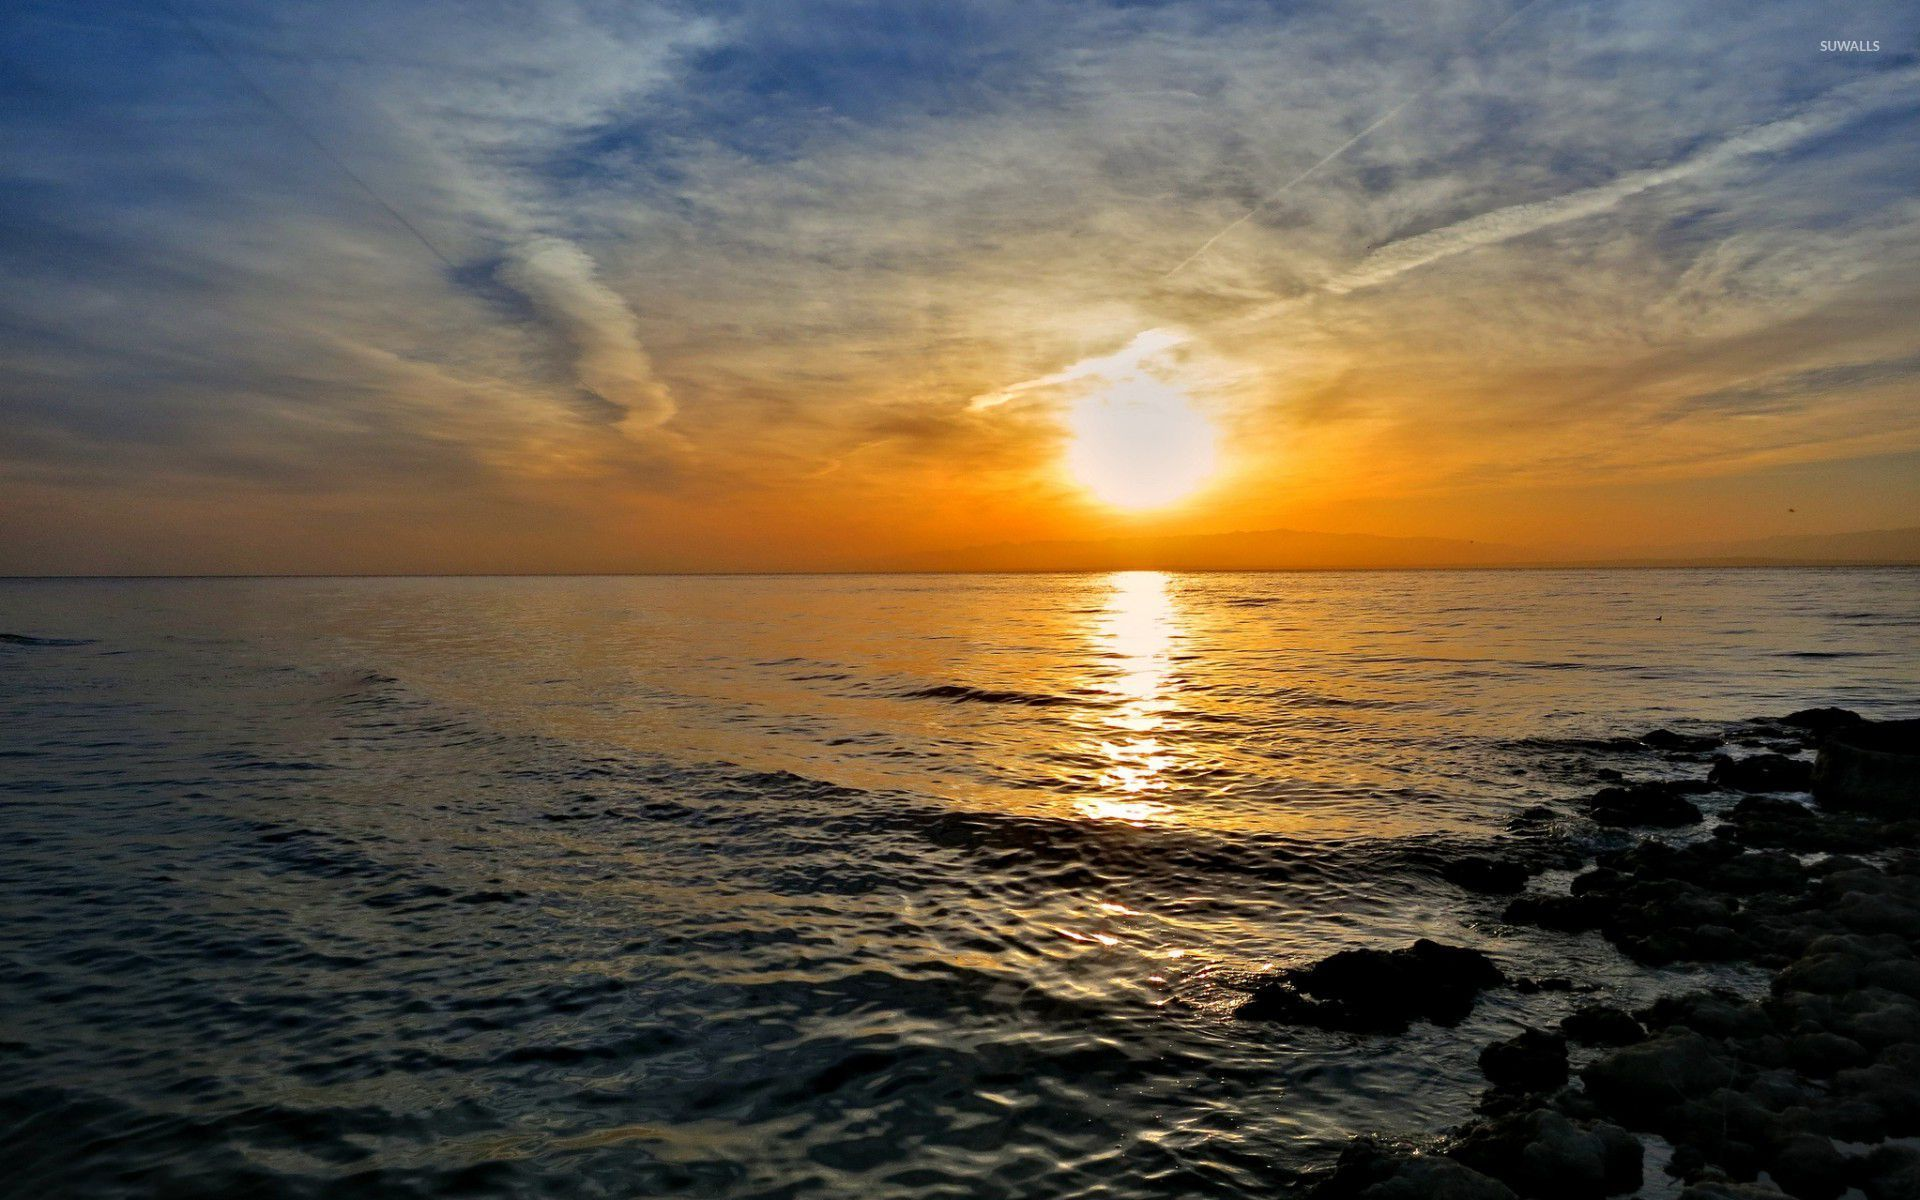 Fall Mountain Scenes Wallpaper Amazing Sunset Reflecting In The Ocean Wallpaper Nature